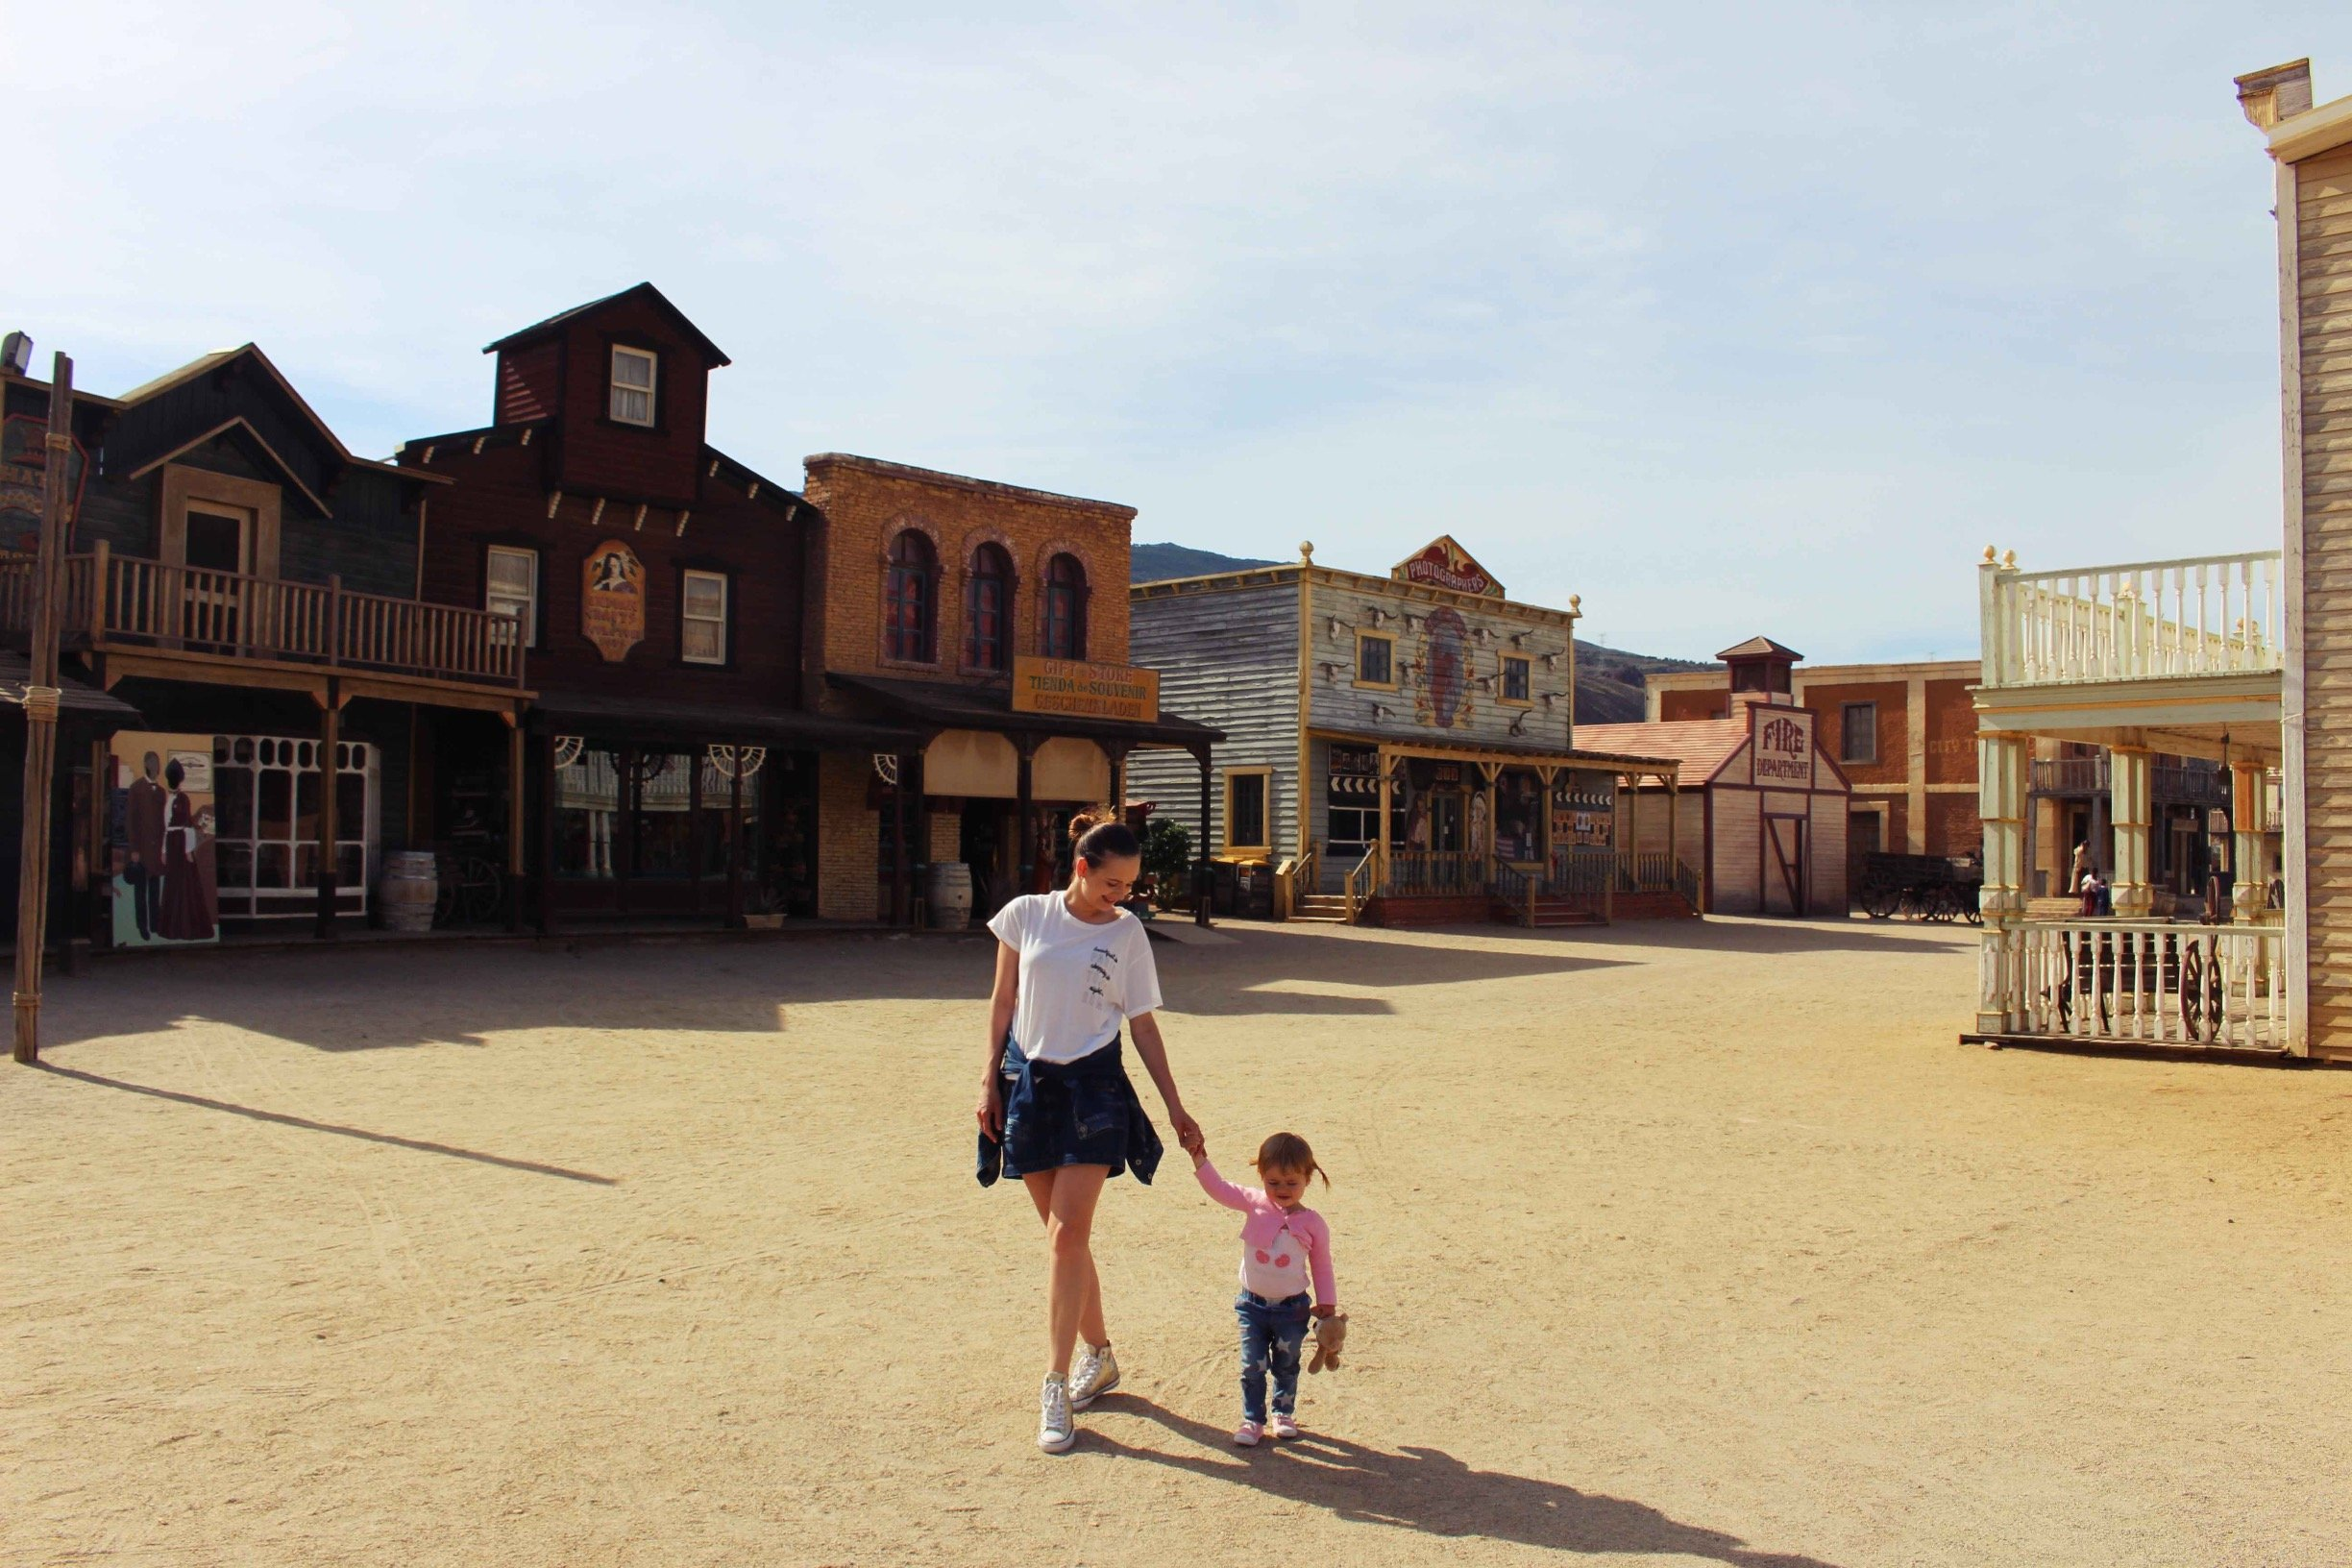 The Spanish Wild West: Theme Parks in Almeria #spain #themepark #almeria #andalusia #wildwest #travel #europe #western #movie #set